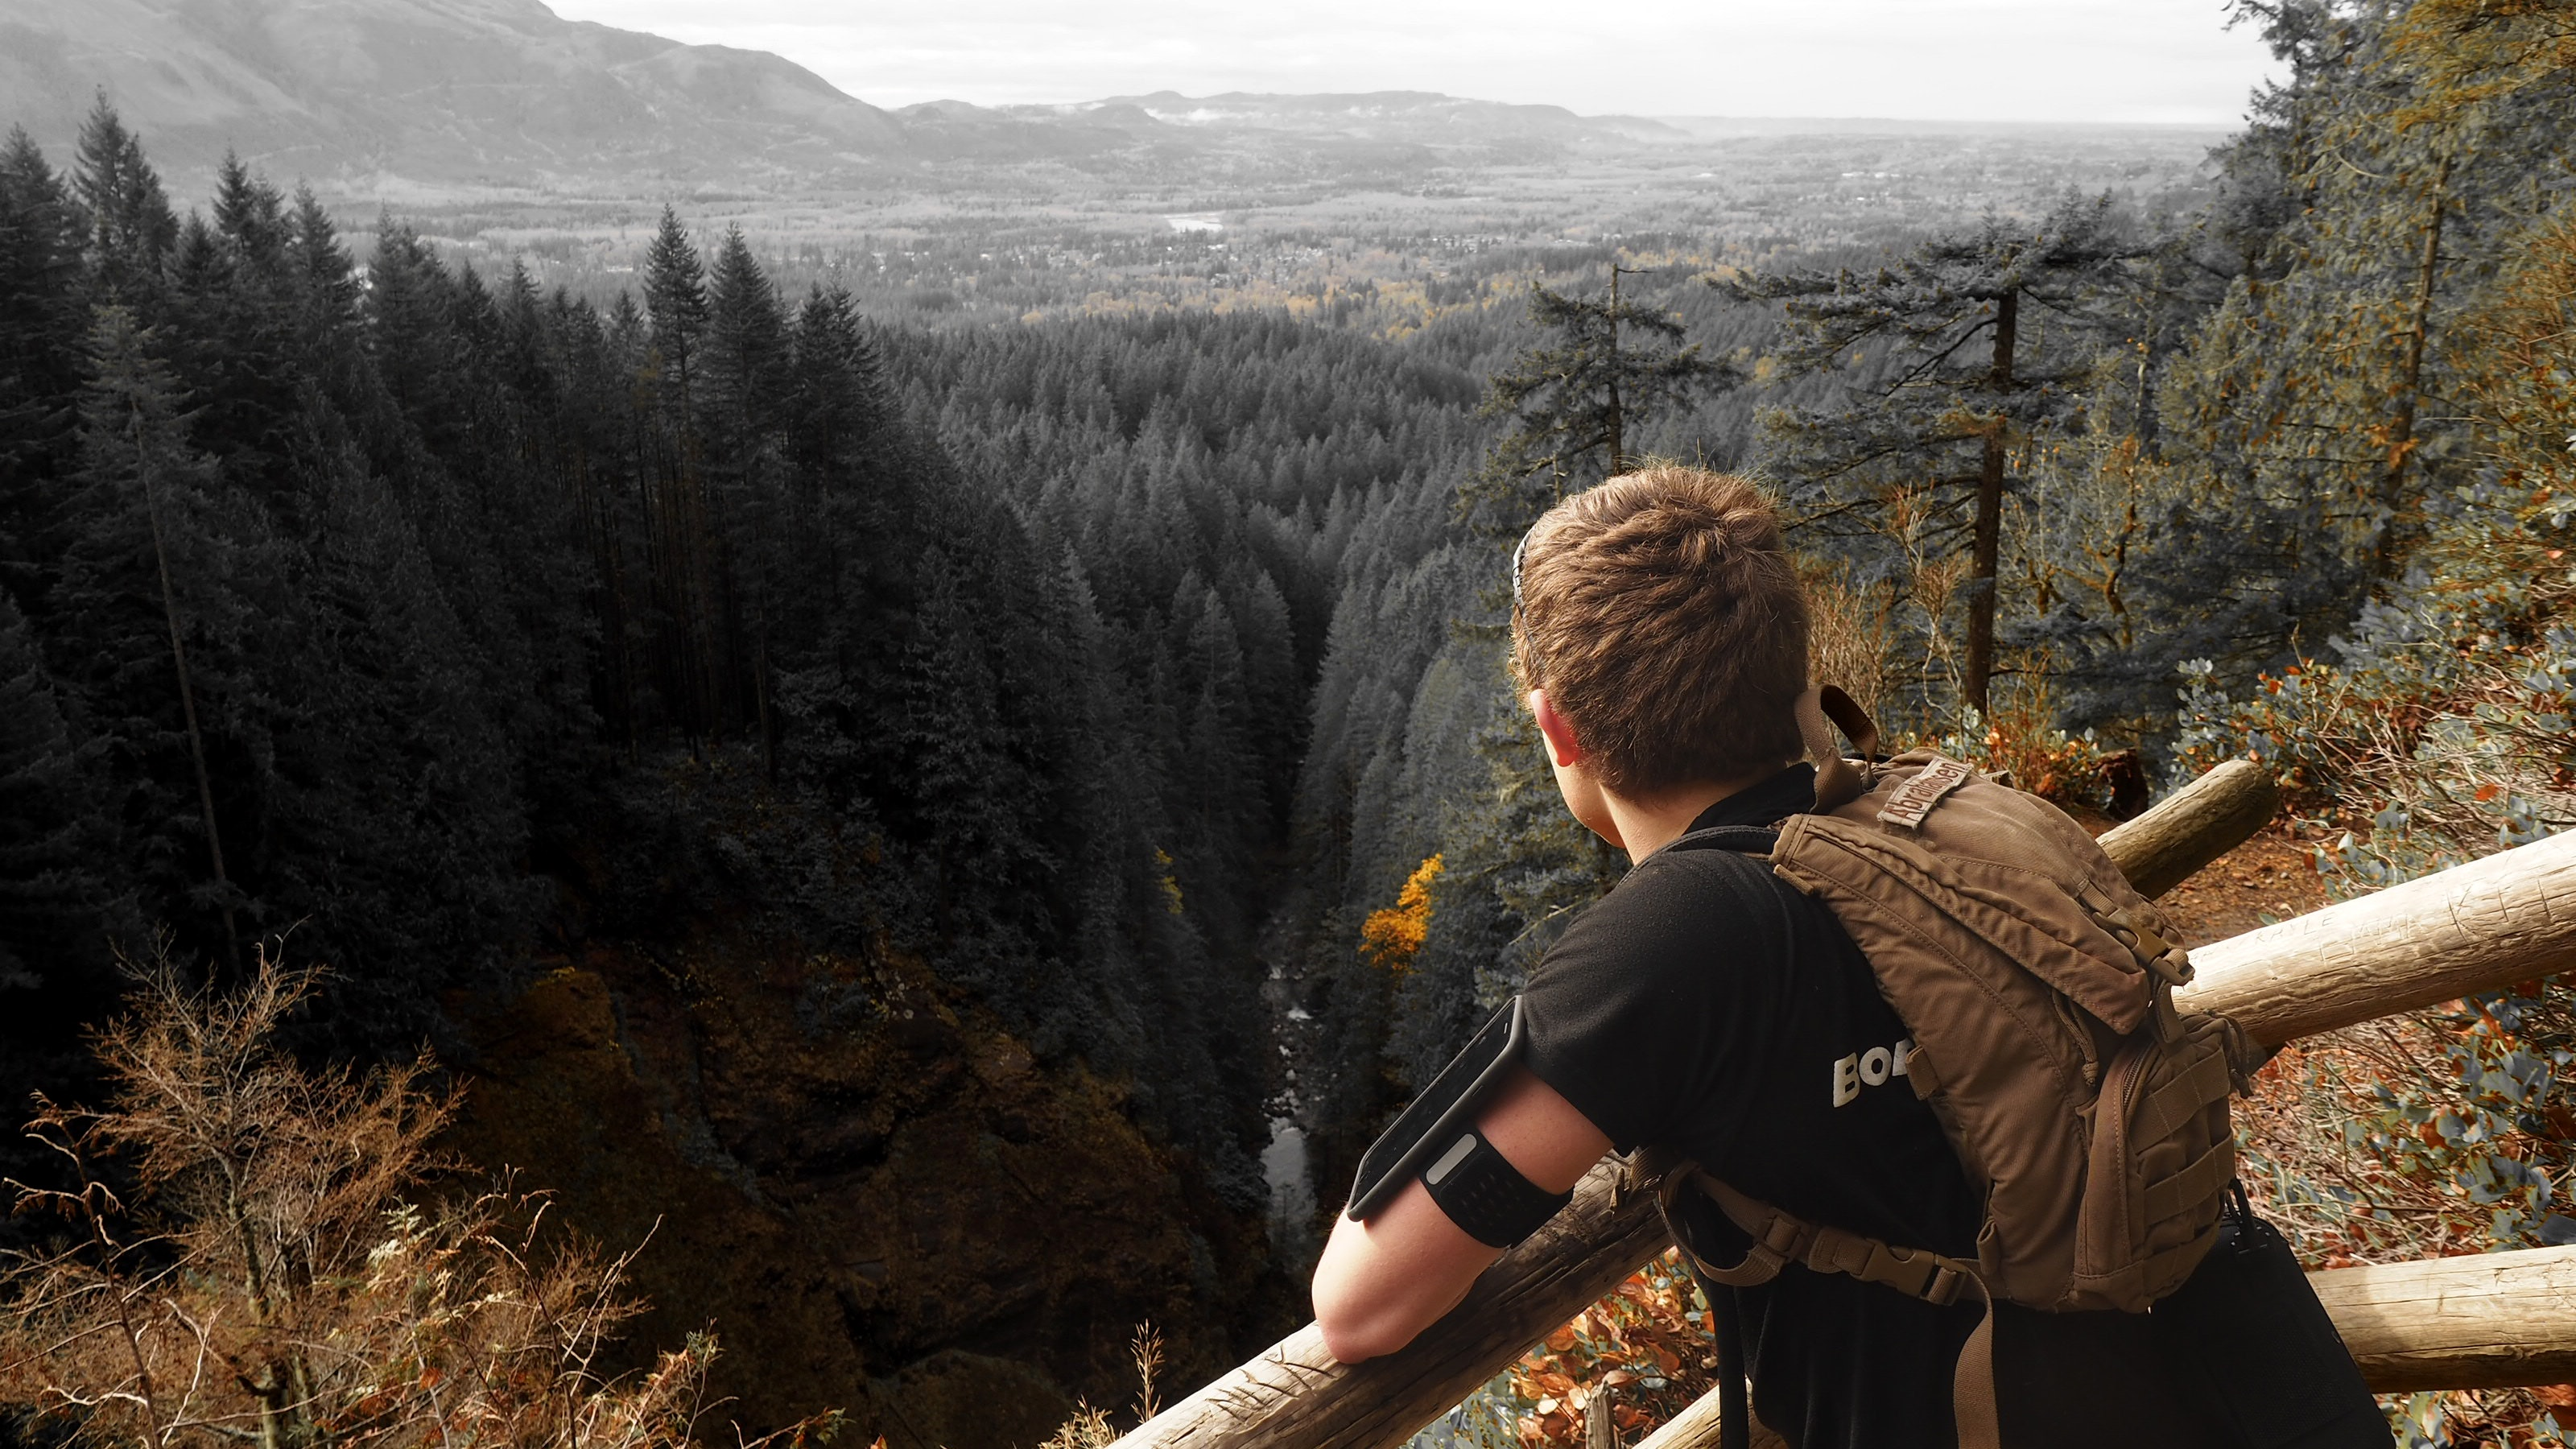 Man in black shirt and brown backpack leaning on brown wooden handrail looking over green leaf pine trees and creek photo